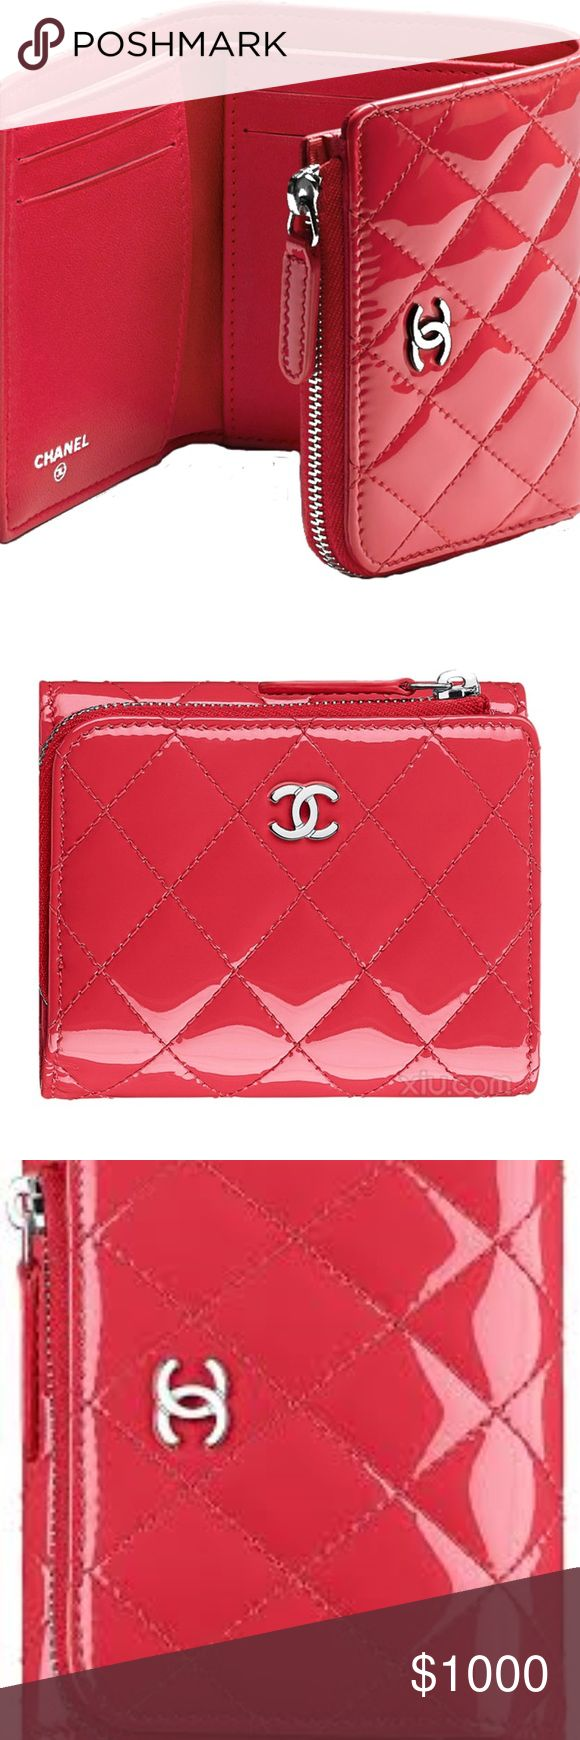 ISO NOT FOR SALE Chanel Small Patent Wallet ISO: DO NOT BUY, NOT FOR SALE  In search of a Chanel Small Patent Calfskin Wallet: Style Number A80480 Y06830 2A787 from a few years back in a coral patent leather. Please let me know if you have one and are willing to list it on Posh. Also, if you come across one on another site as well, please let me know! Trying to knock some things off my wish list in 2018! CHANEL Bags Wallets